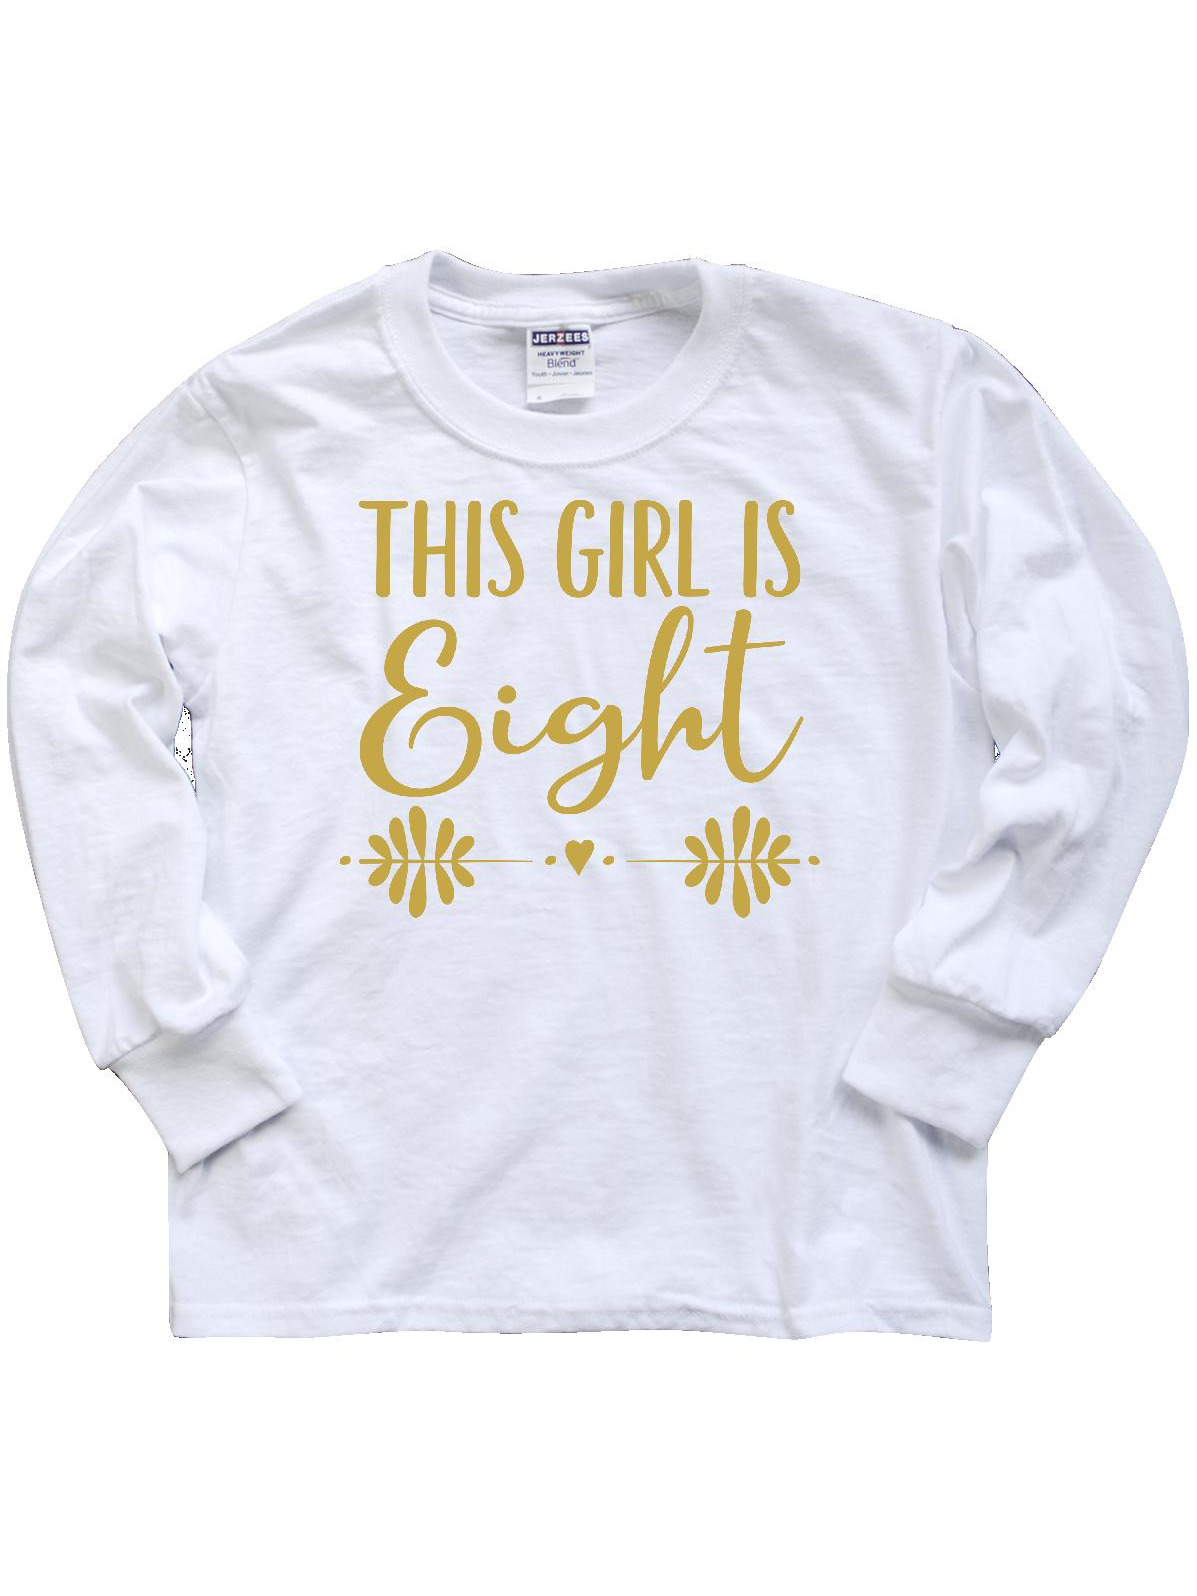 8th Birthday Gold Lettering Girls 8 Year Old Youth Long Sleeve T-Shirt